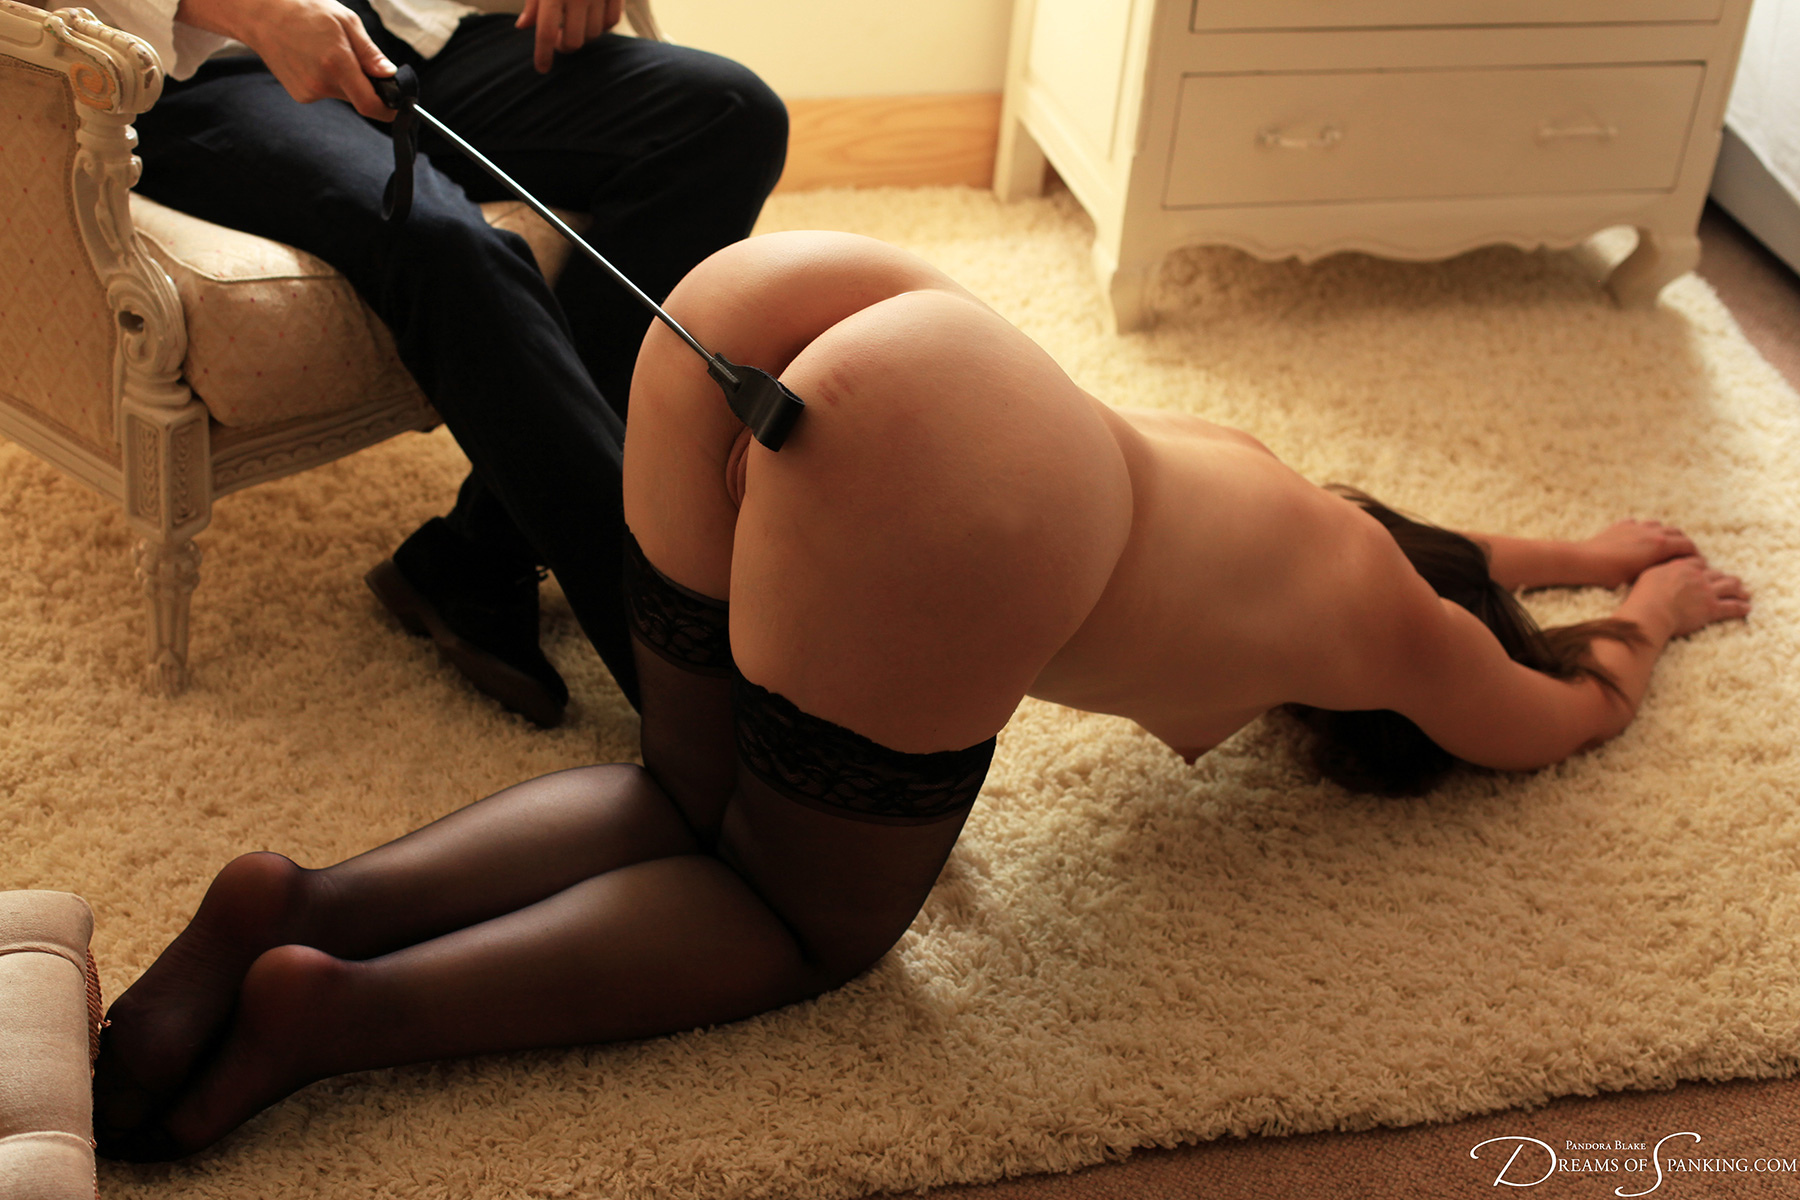 A naked woman surrenders and offers her bottom submissively to the crop.